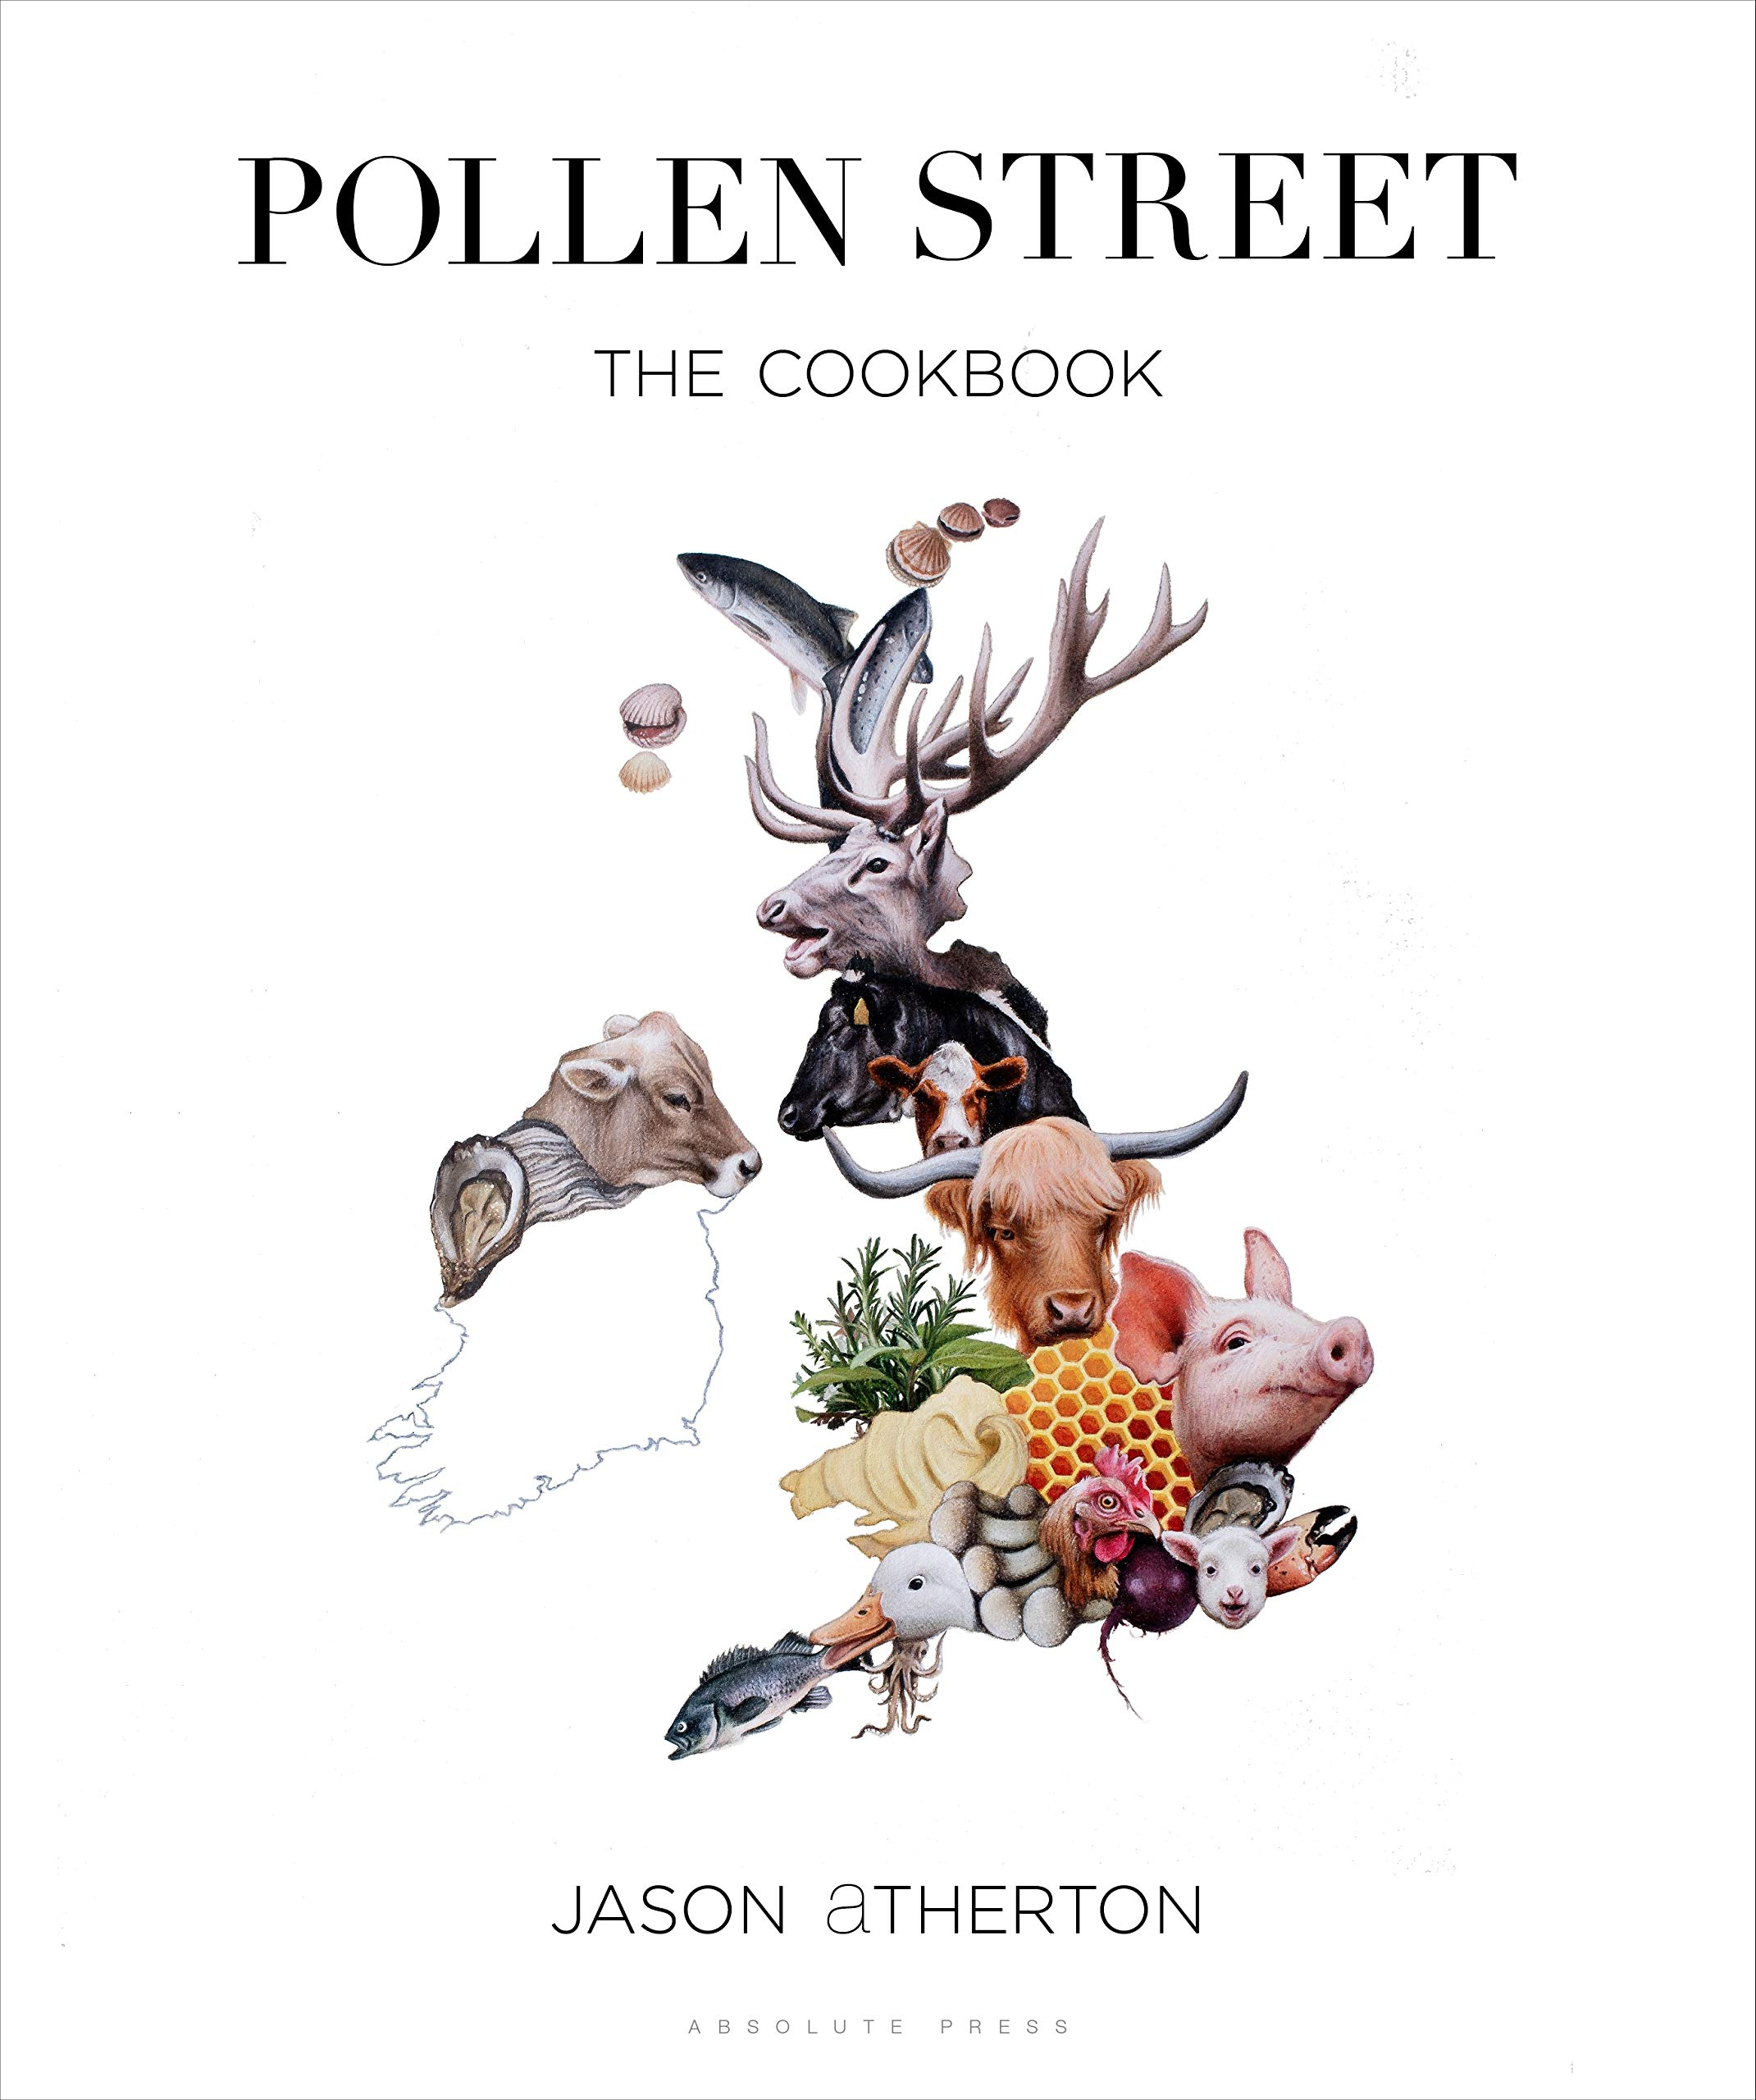 Pollen Street  By Chef Jason Atherton As Seen On Television's The Chefs' Brigade